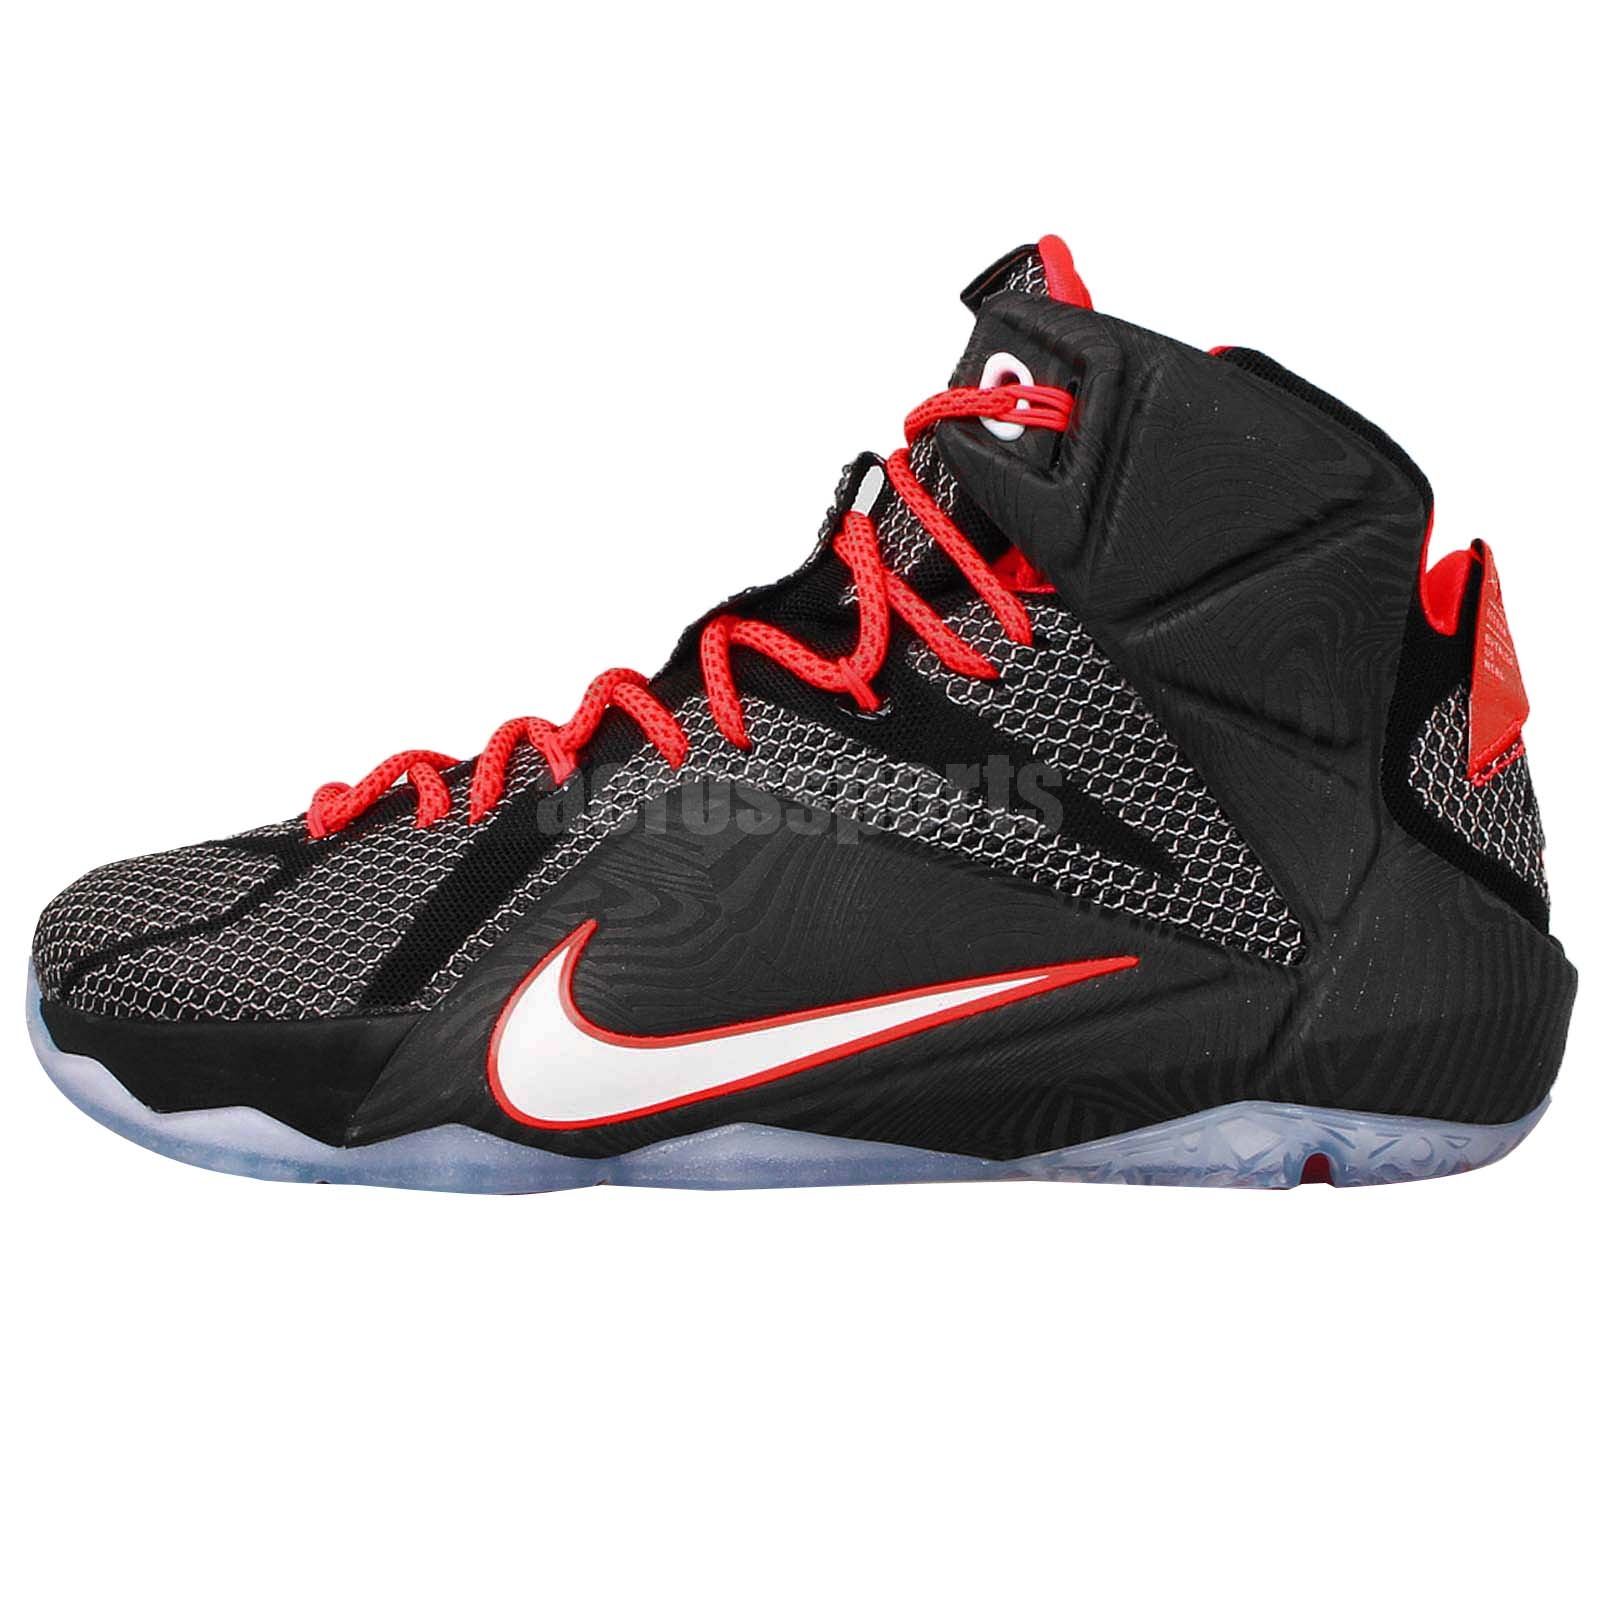 Lebron James On Court Shoes | The River City News